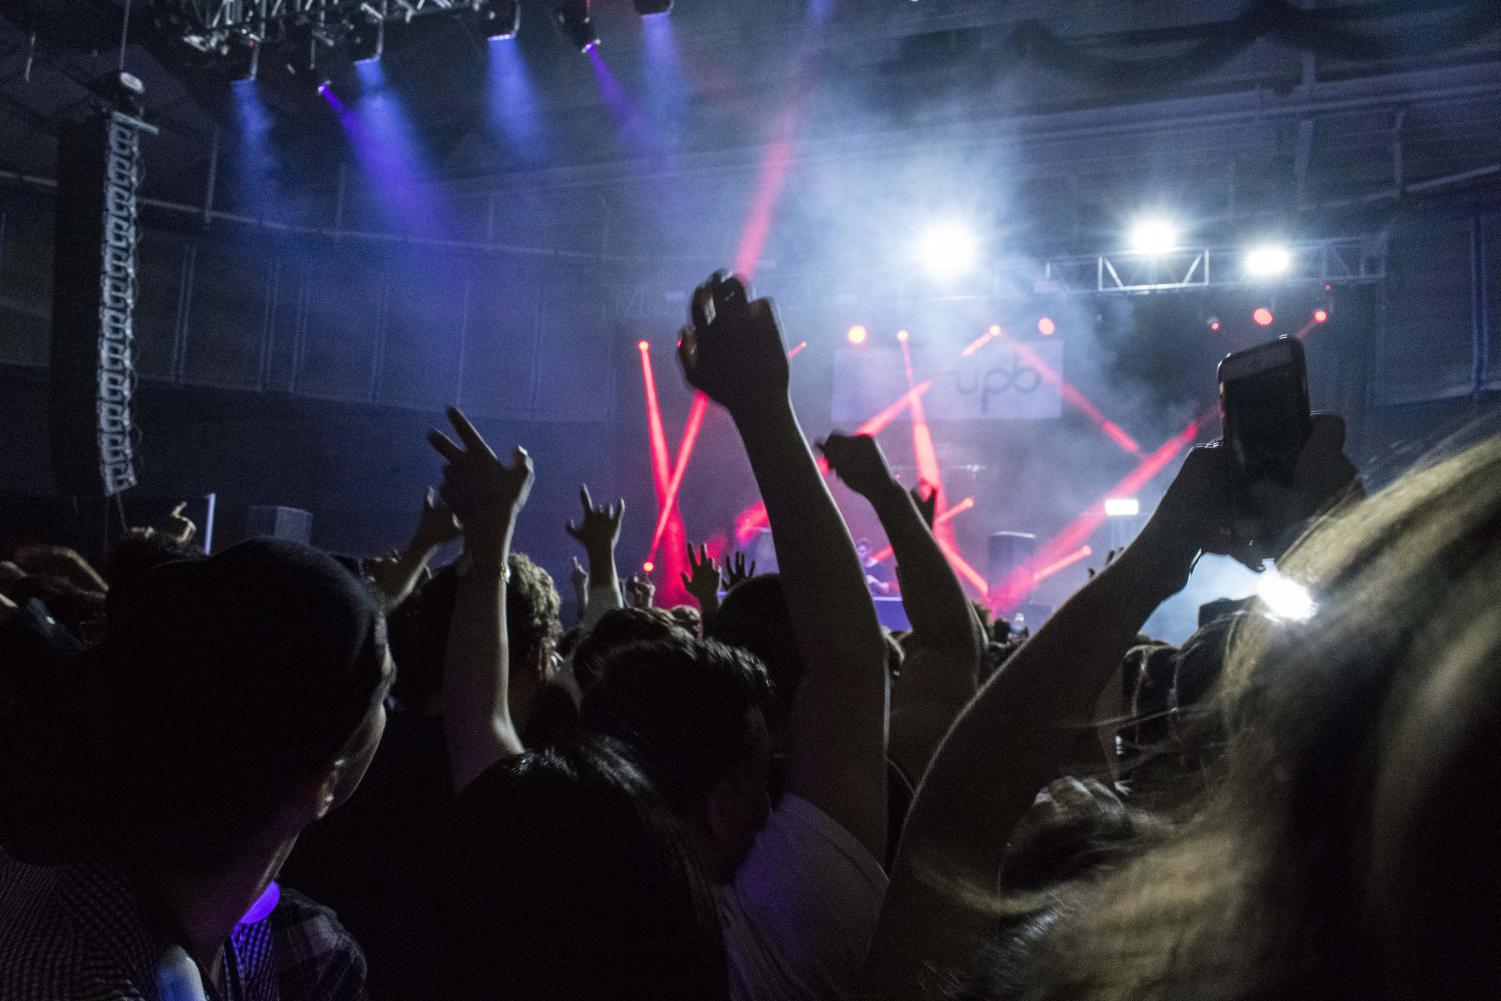 A$AP Ferg and 3Lau performed to a large crowd at UPB's Trick or Trap, this year's Fall Concert.